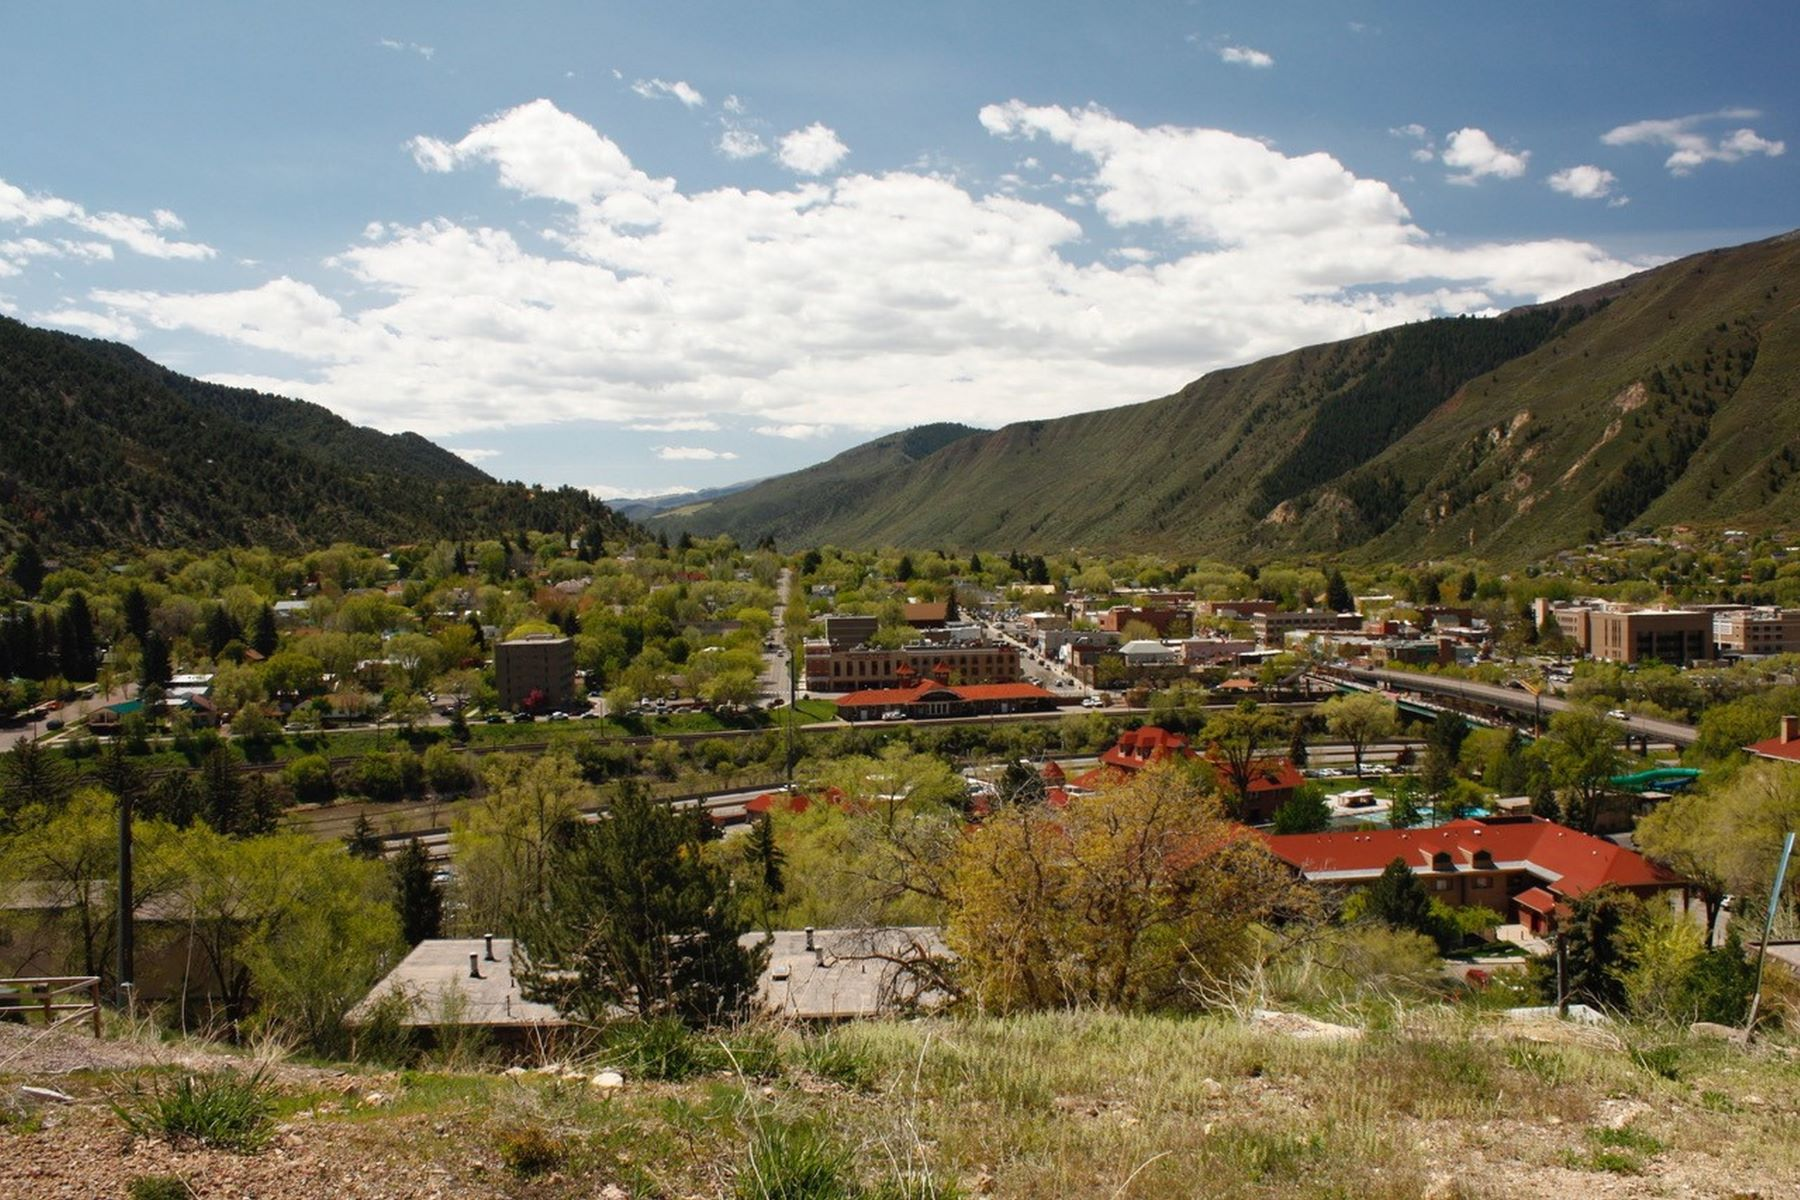 Terreno por un Venta en Triplex Lot in Downtown Glenwood Springs 502-506 Echo Street, Glenwood Springs, Colorado, 81601 Estados Unidos